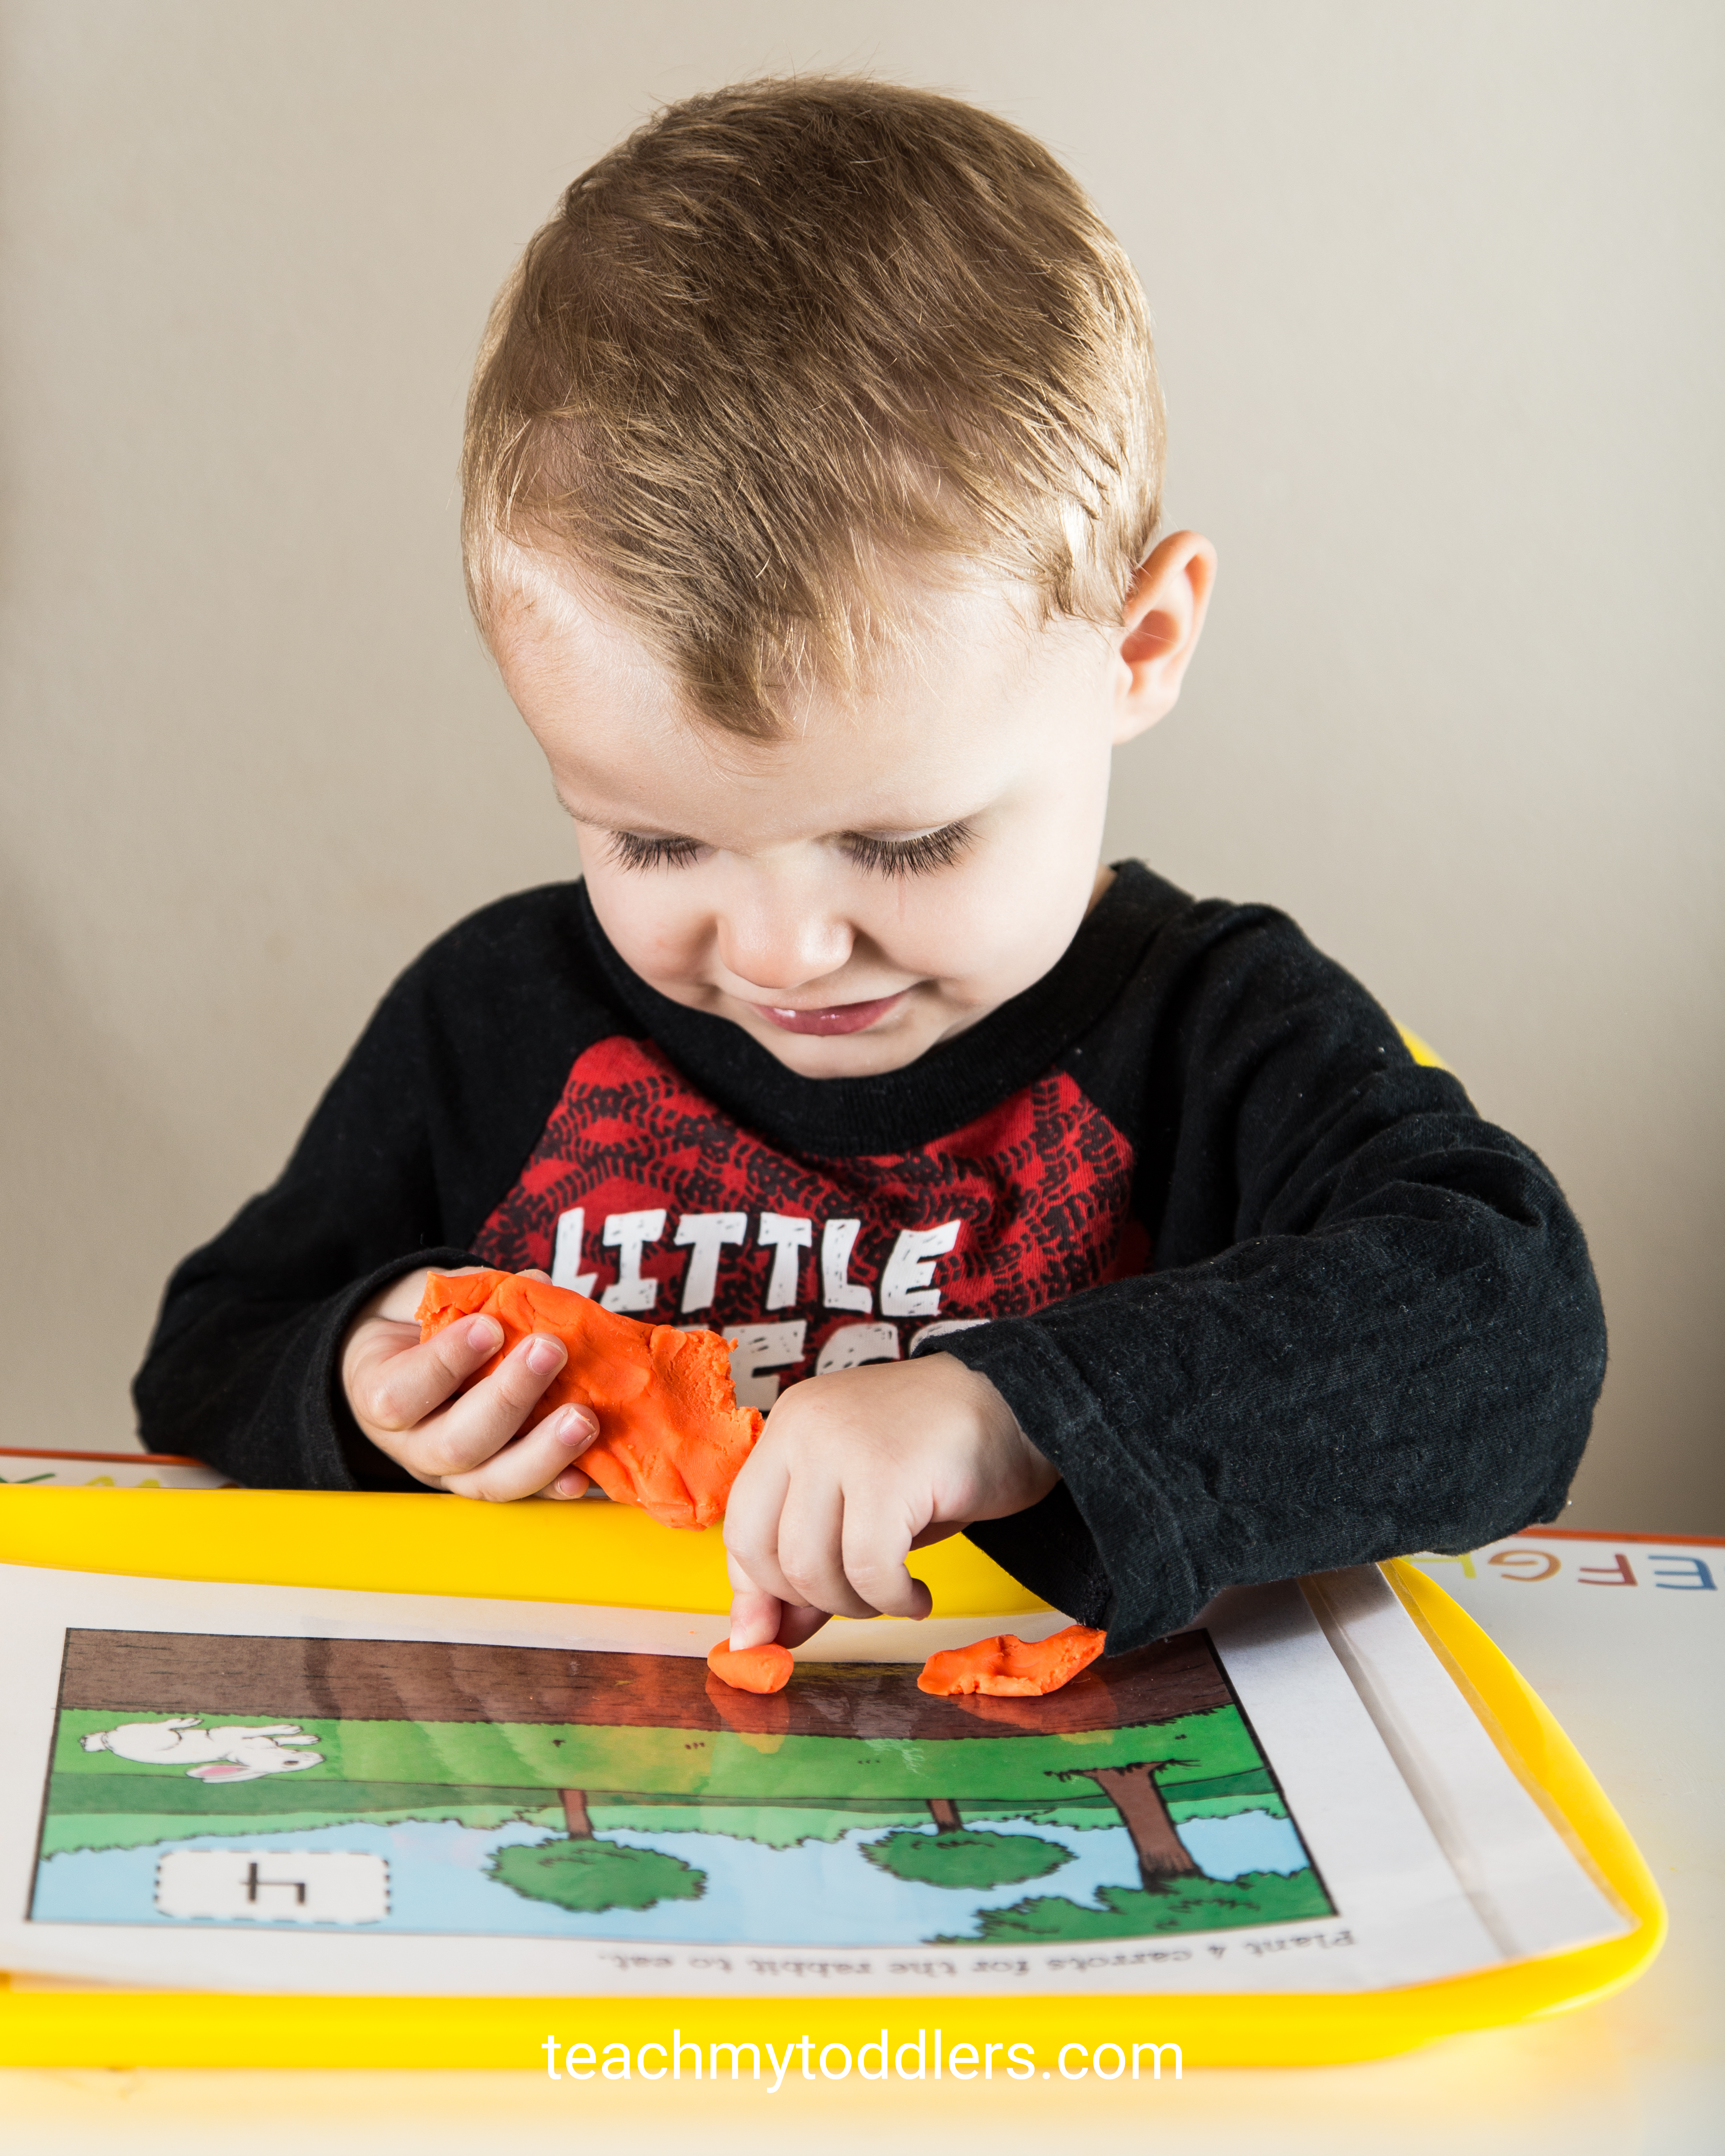 Discover how to use these garden activities to teach your toddlers about gardening